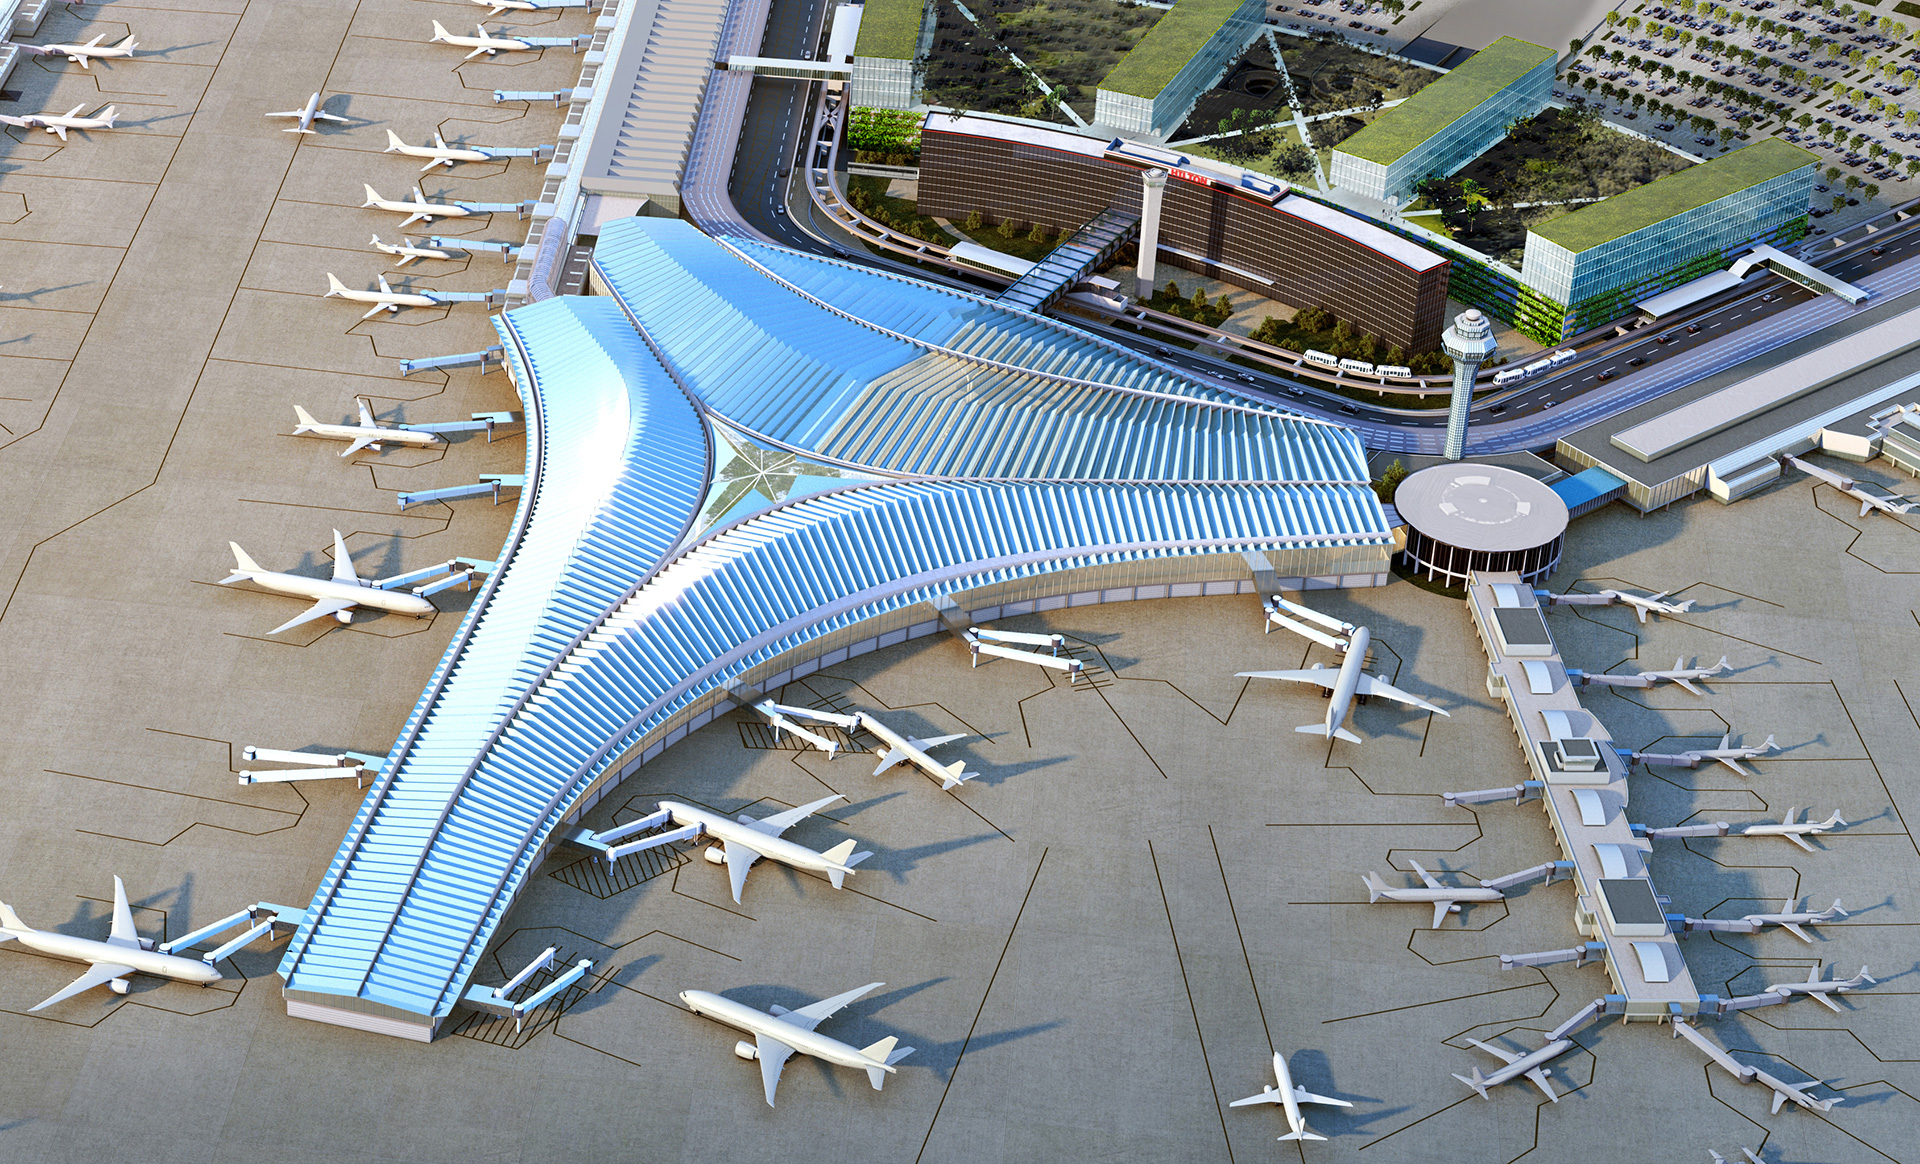 'Y' shaped design reflecting upon Chicago's culture | O'Hare International Airport| Studio ORD| STIR